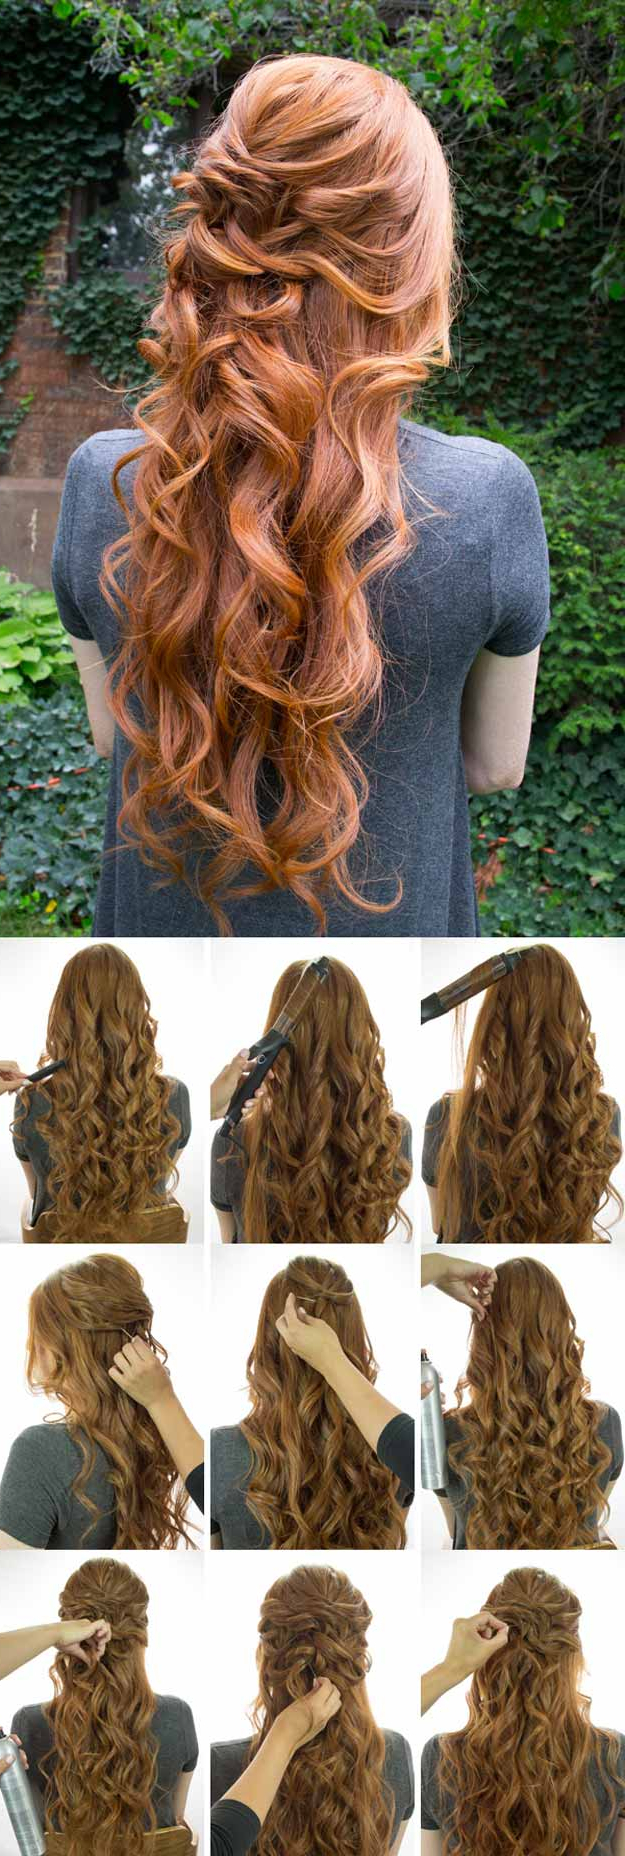 Widely Used Half Up Curls Hairstyles For Wedding Throughout 31 Wedding Hairstyles For Long Hair – The Goddess (View 20 of 20)